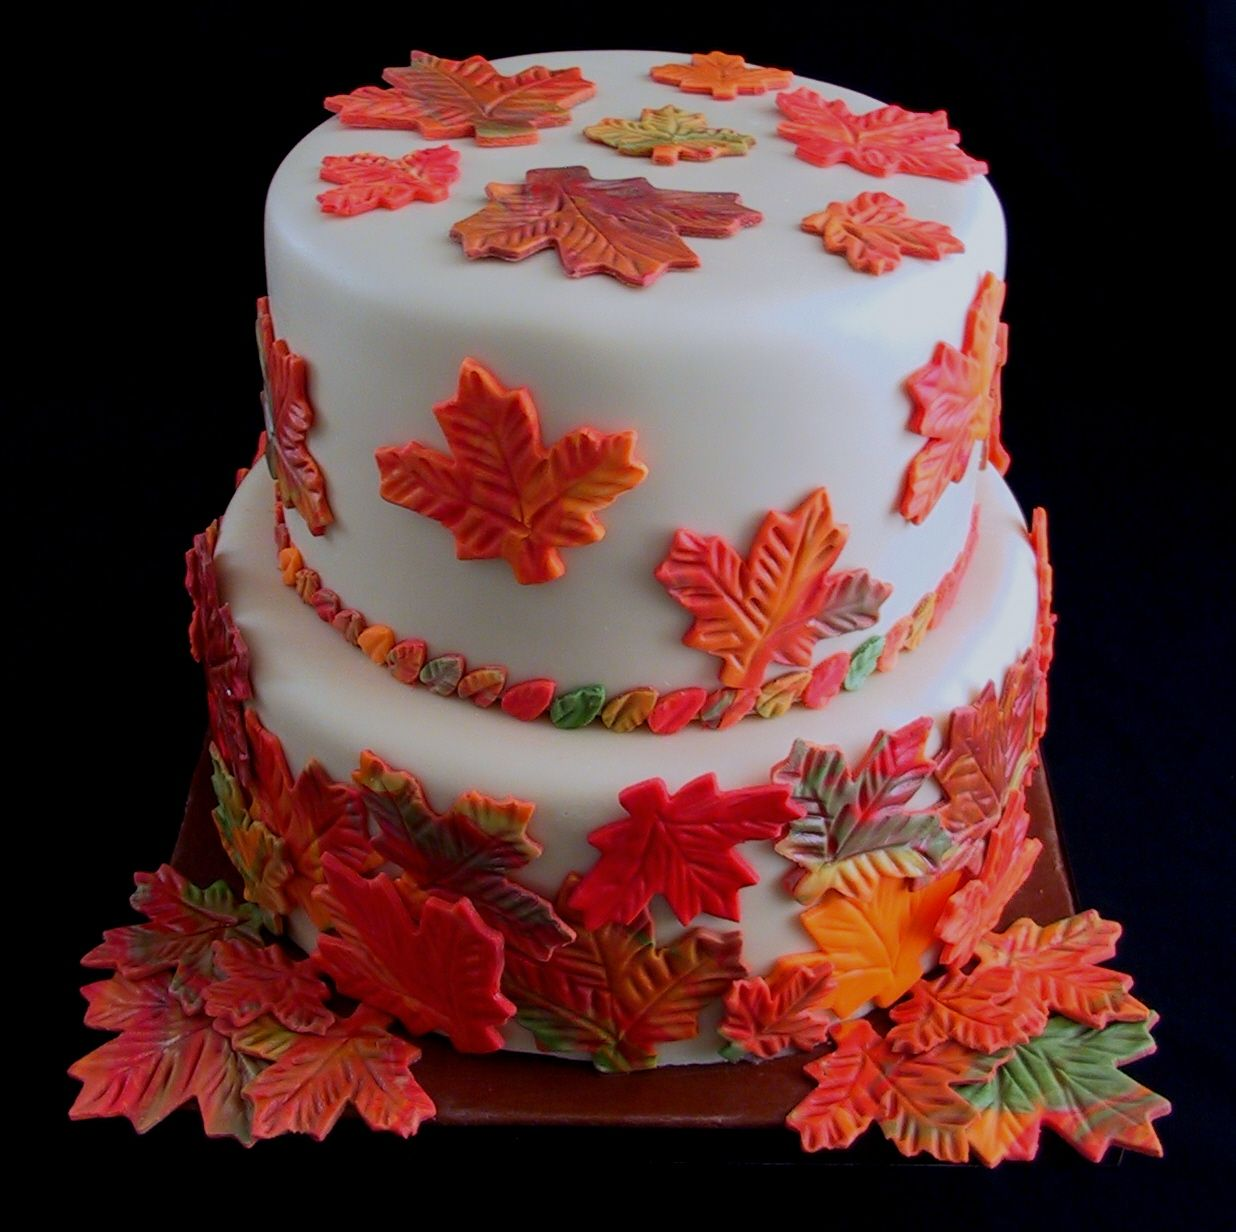 Autumn birthday cakes red yellow orange this colorful fall leaf